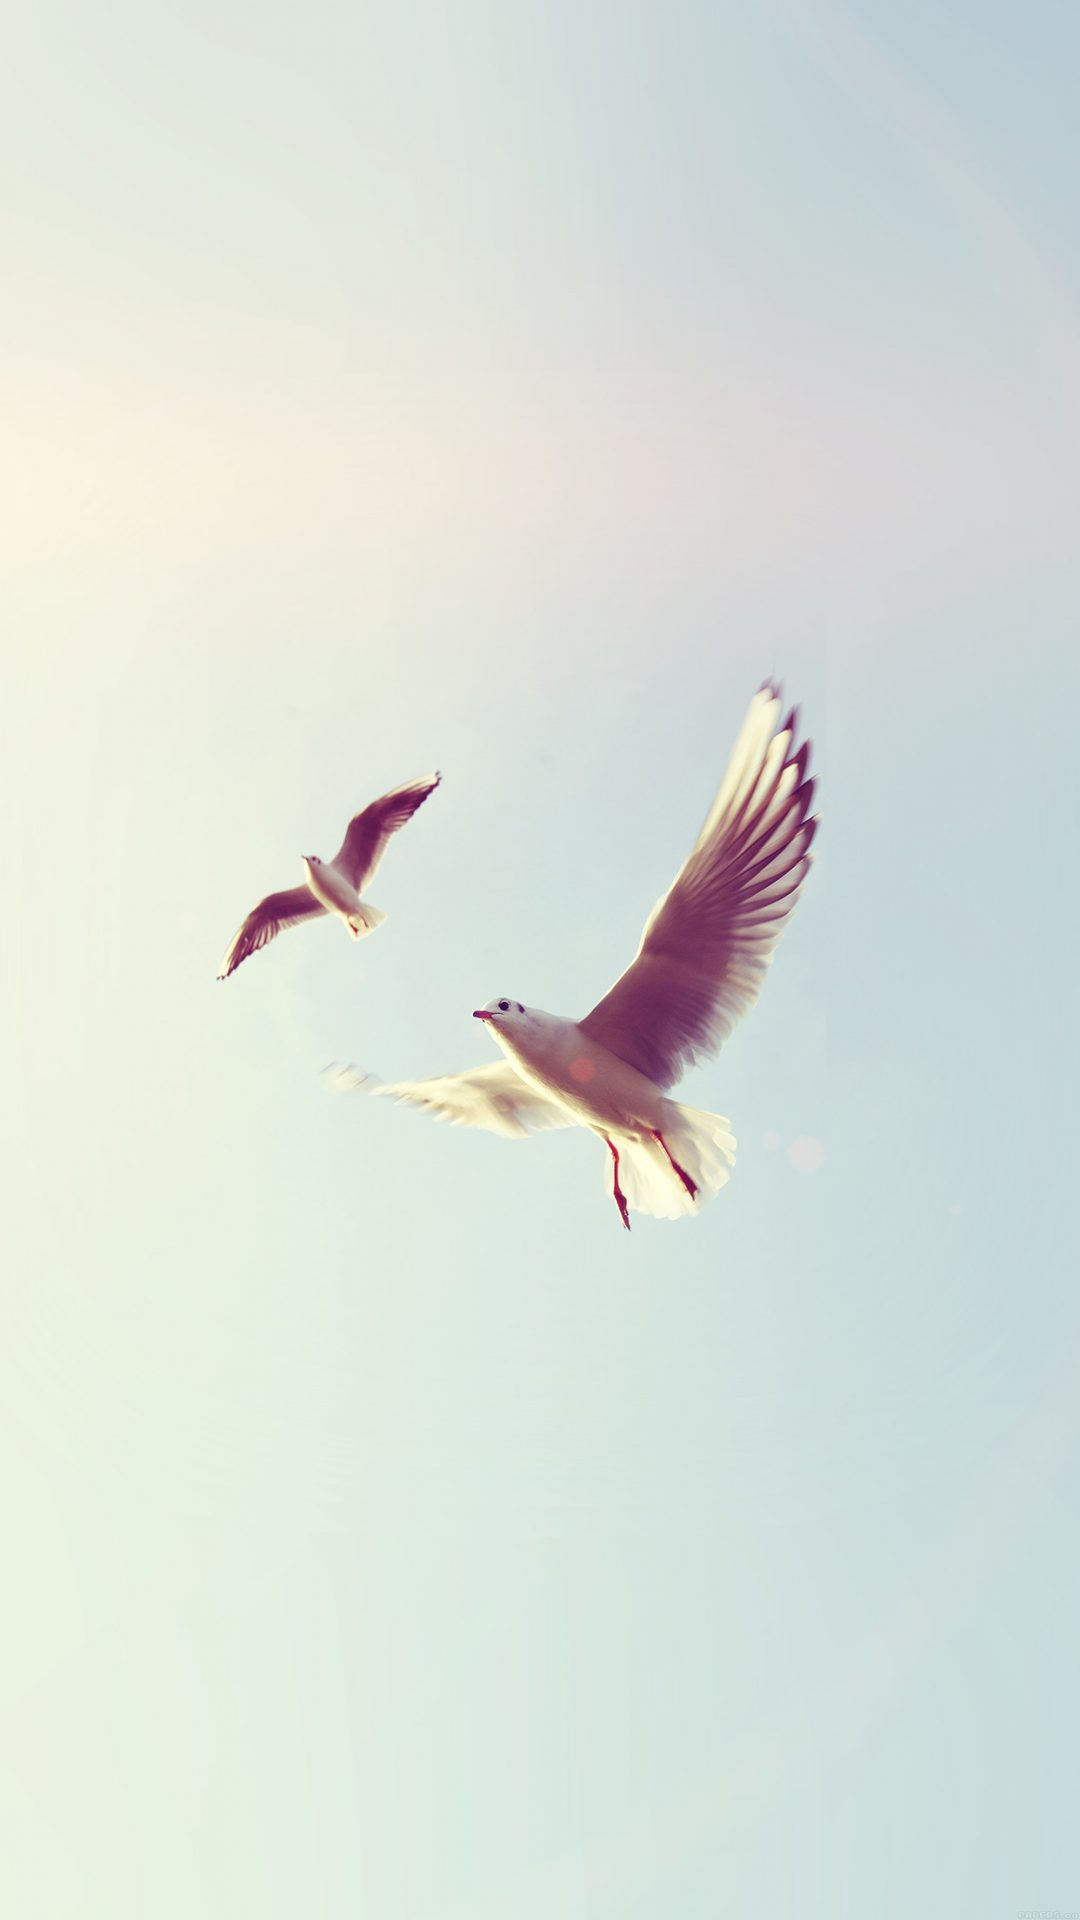 Pigeons Bird Fly Sky Animal Nature Minimal Flare